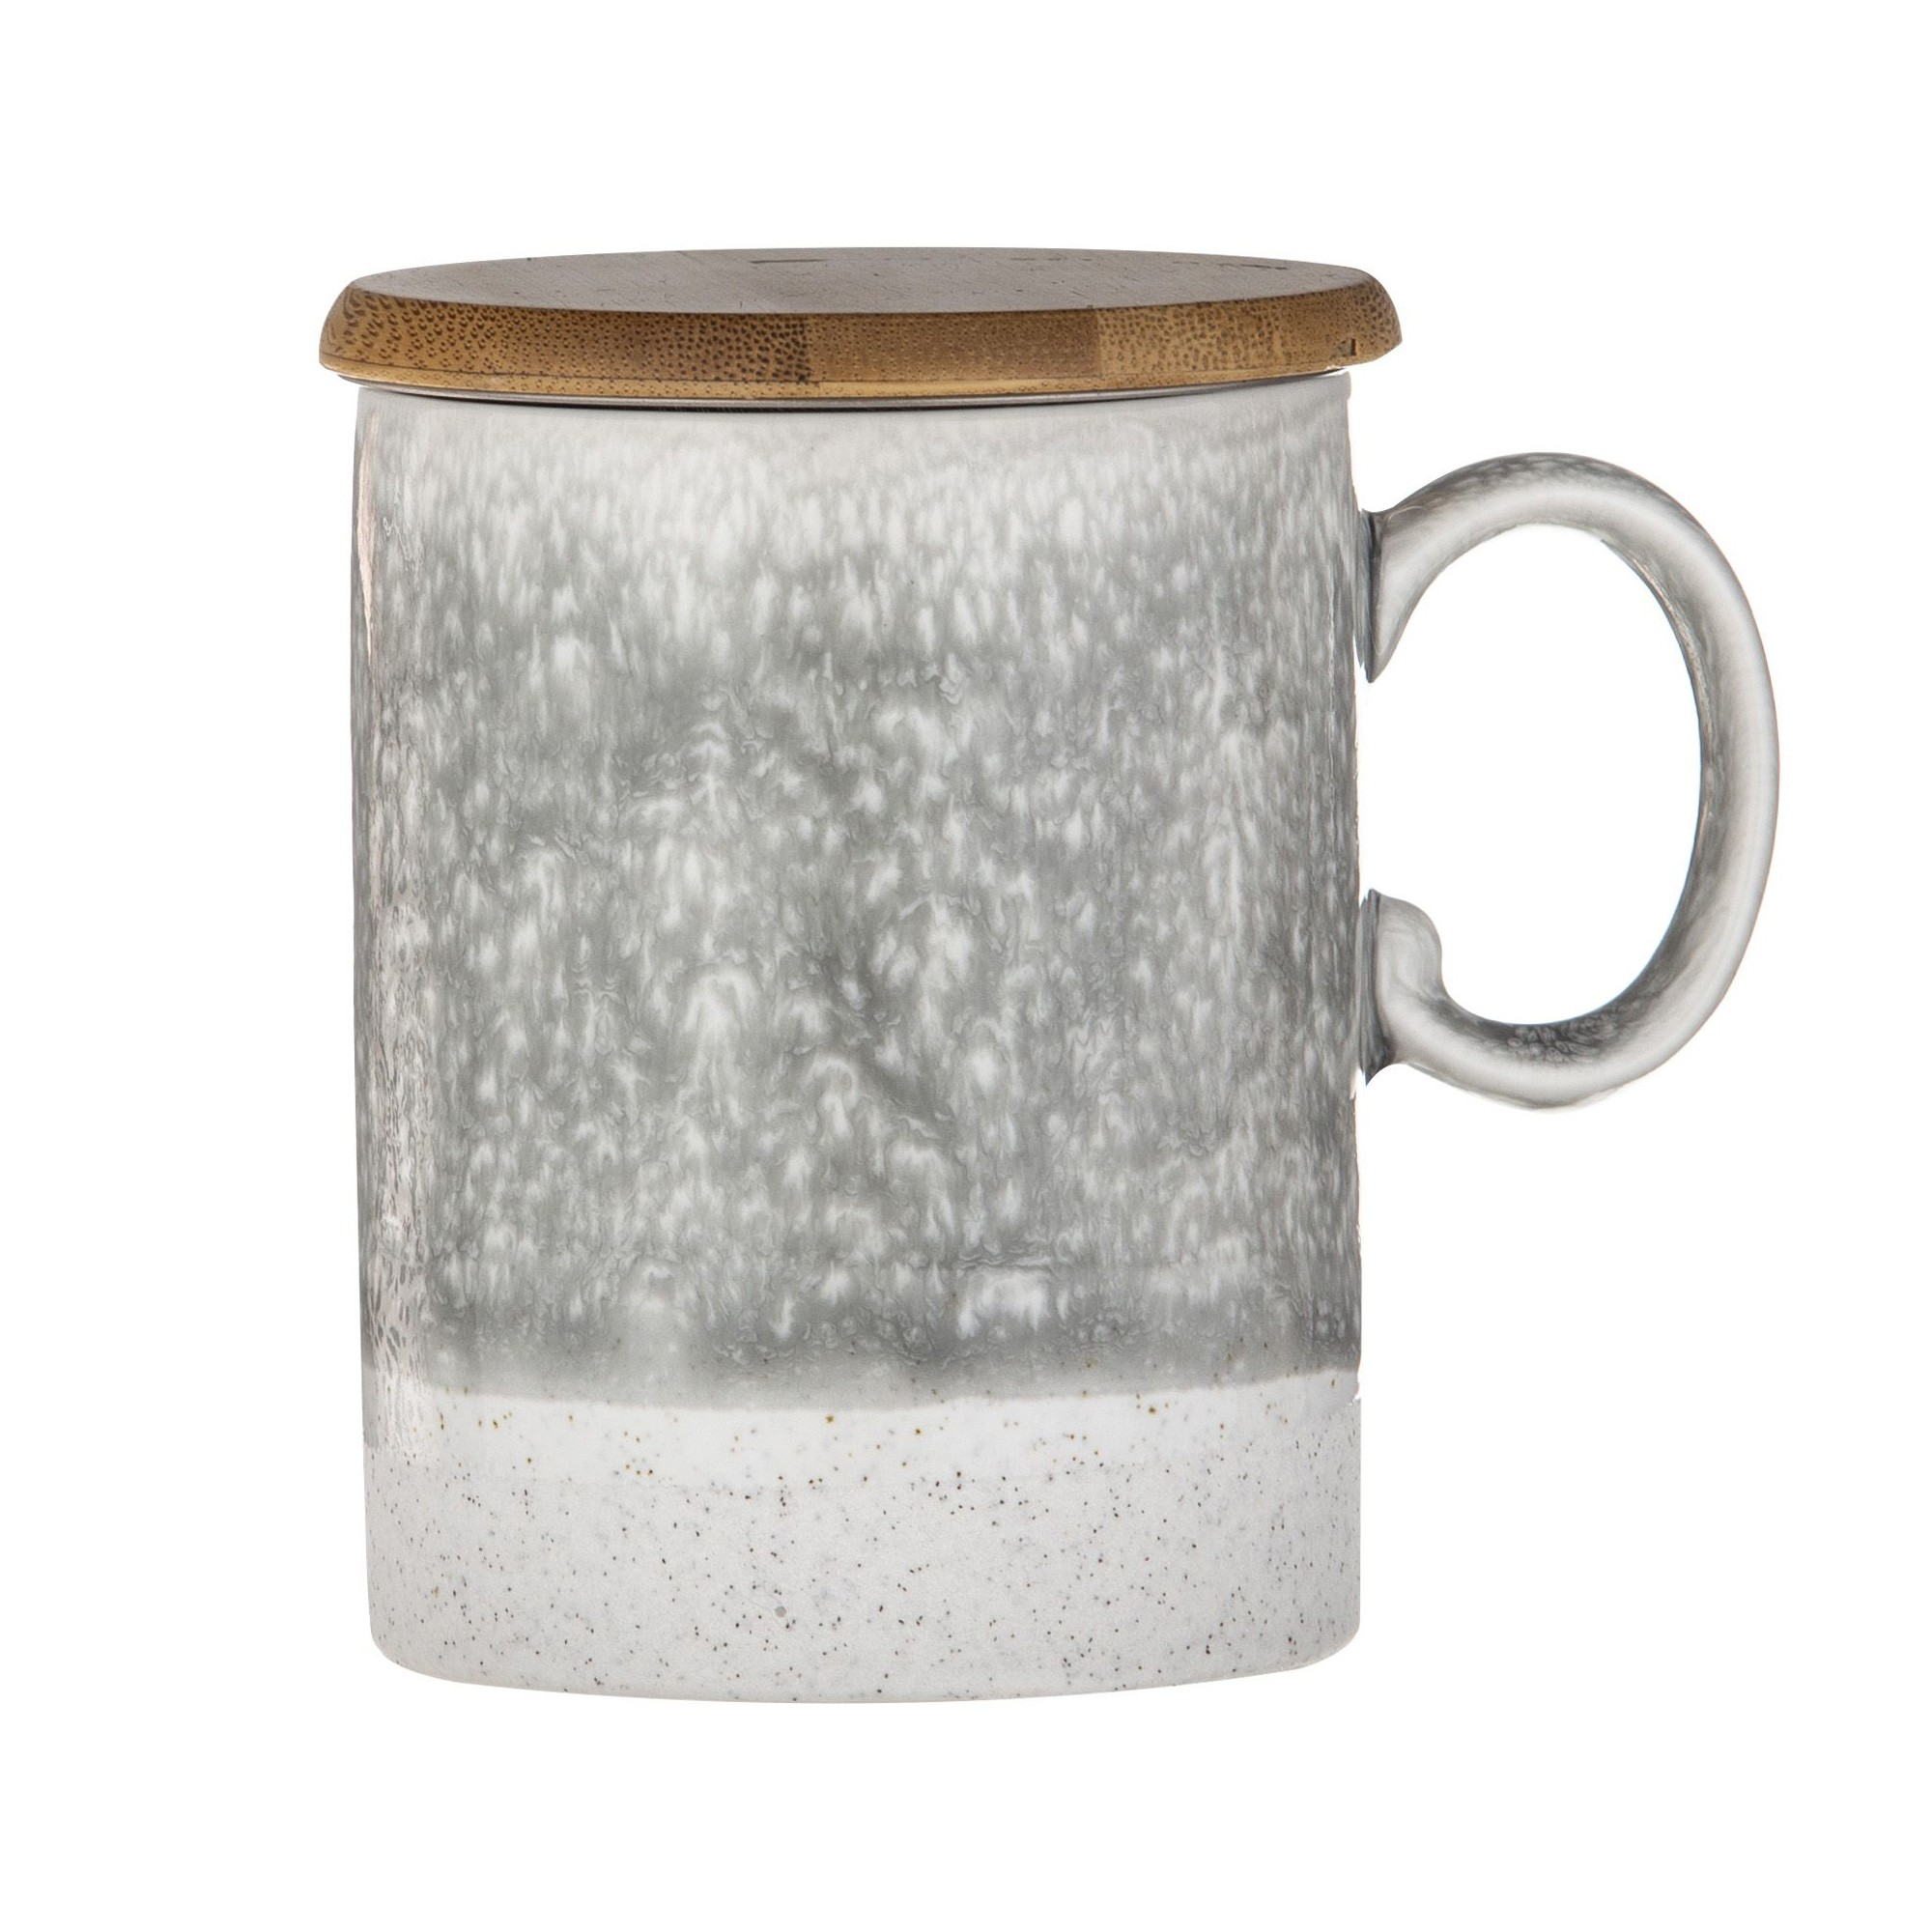 Capri Reactive Glazed Ceramic Tea Mug with Infuser, Grey